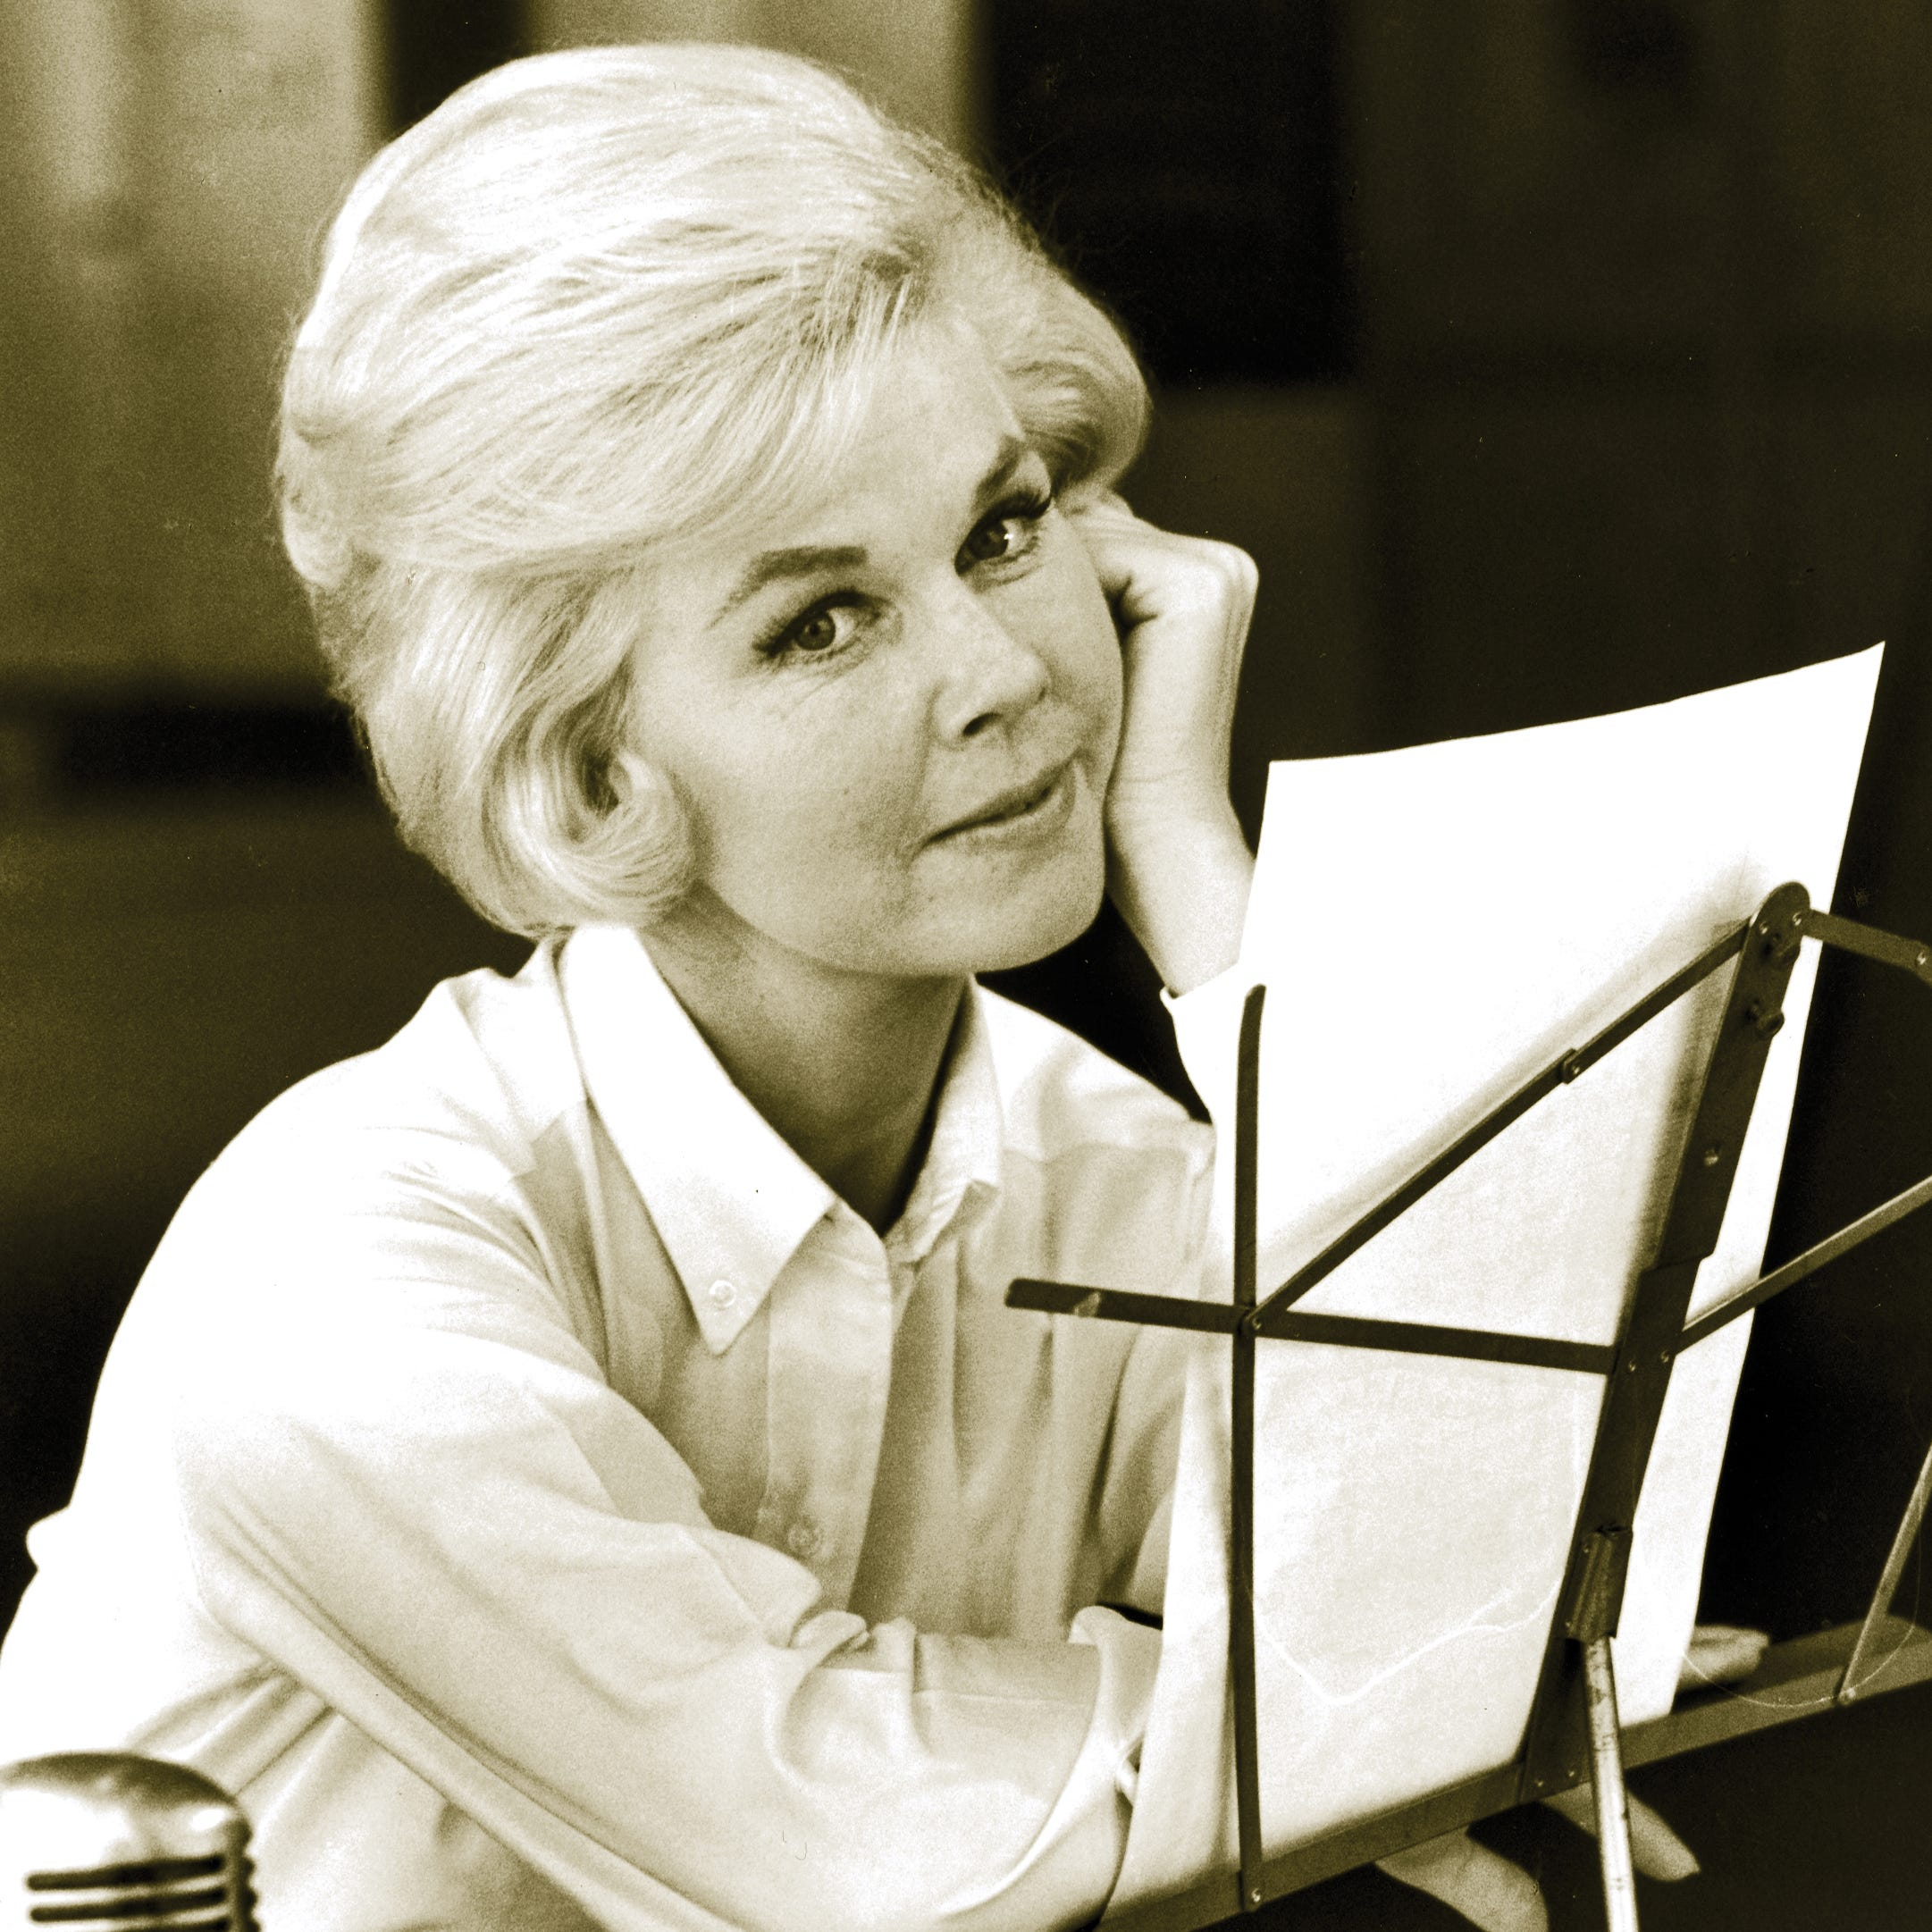 Doris Day was a terrific singer. Here are her greatest songs and albums.